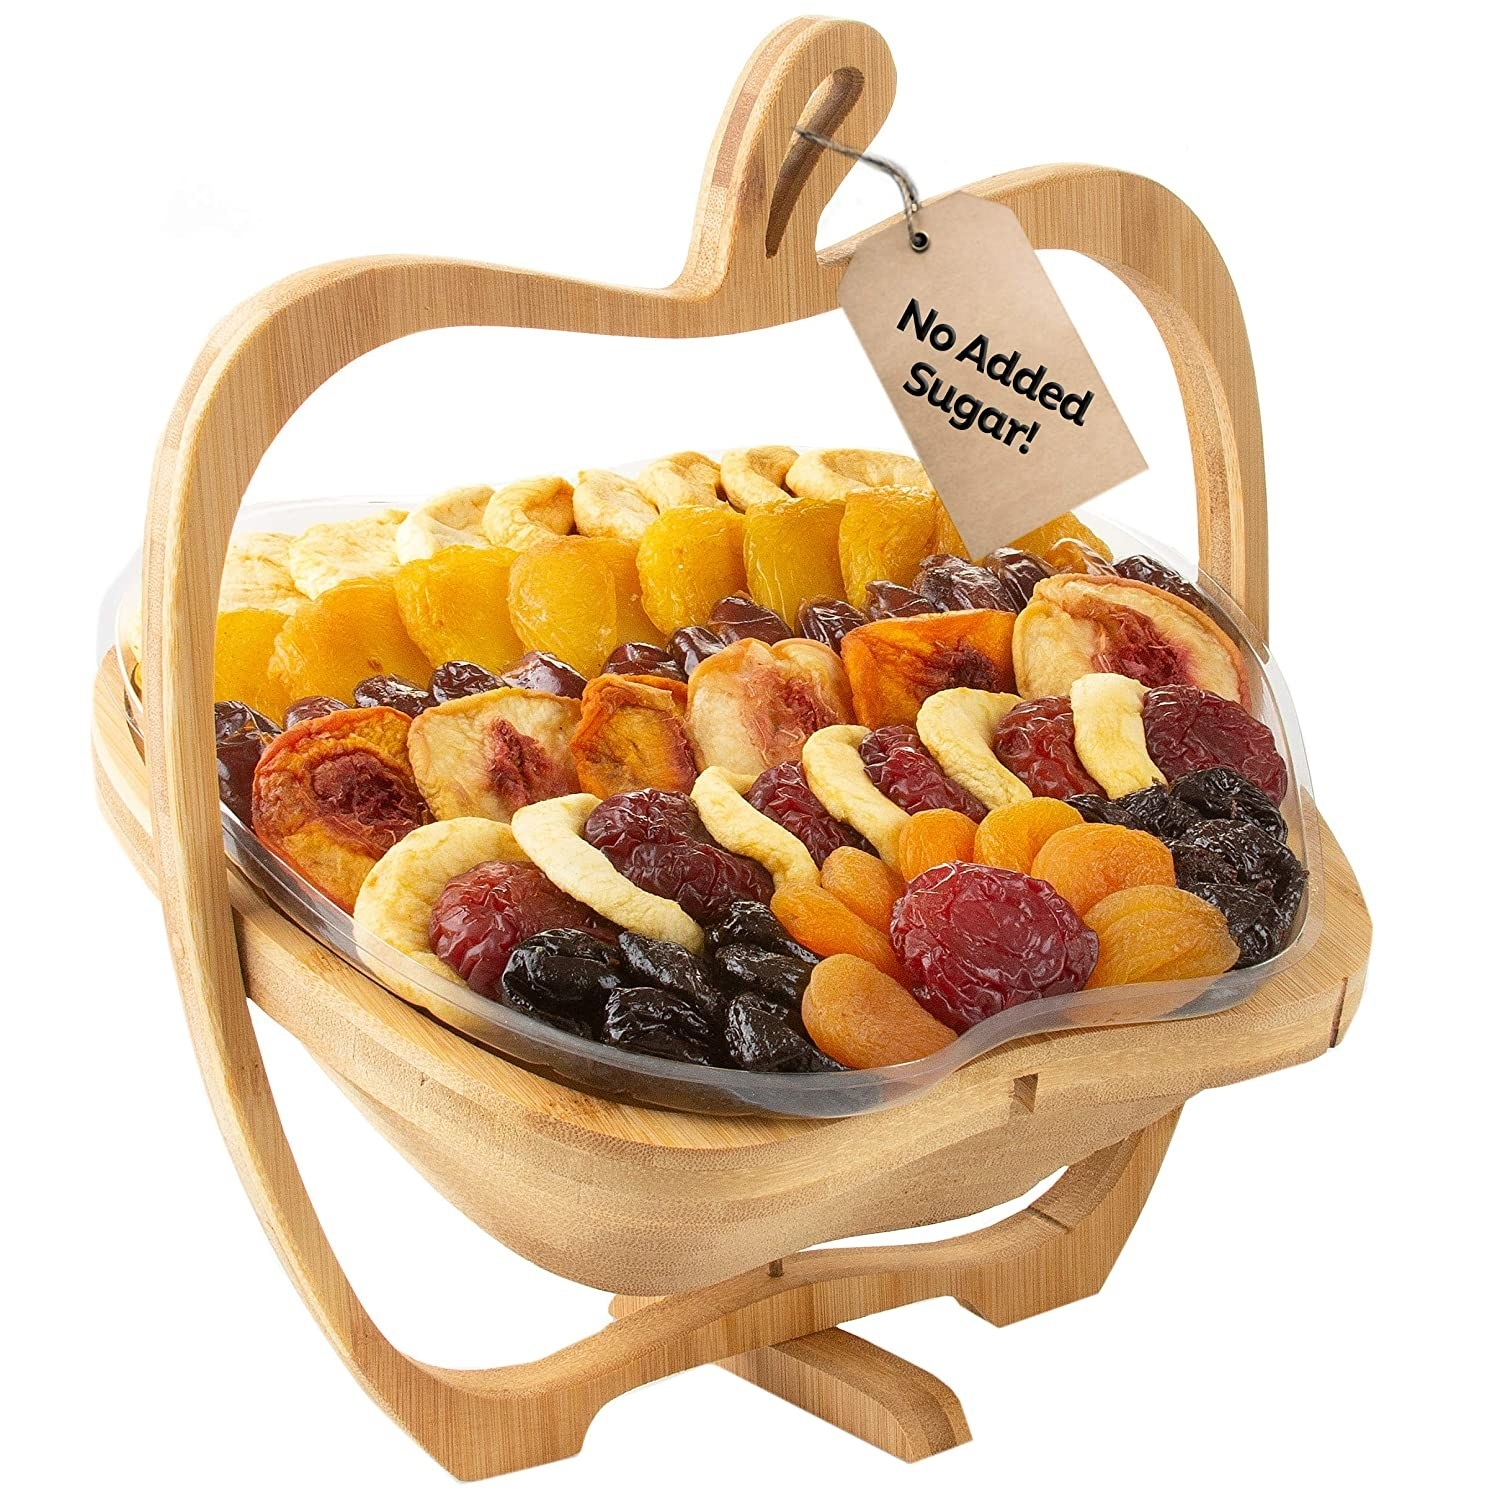 apple shape wood display with dried fruits in it